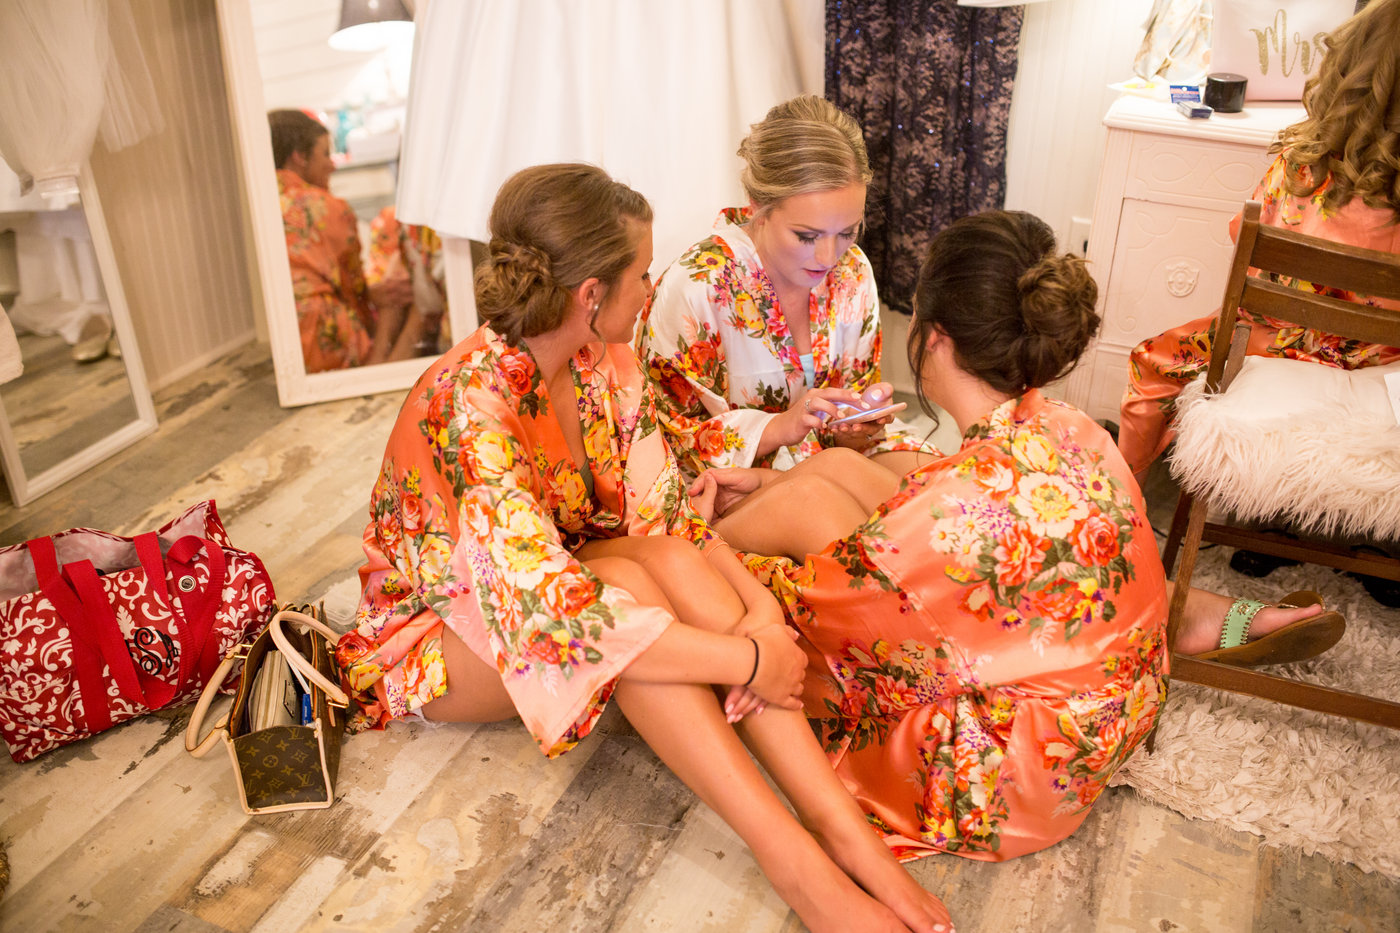 Bride and bridesmaids in robes get ready on wedding day